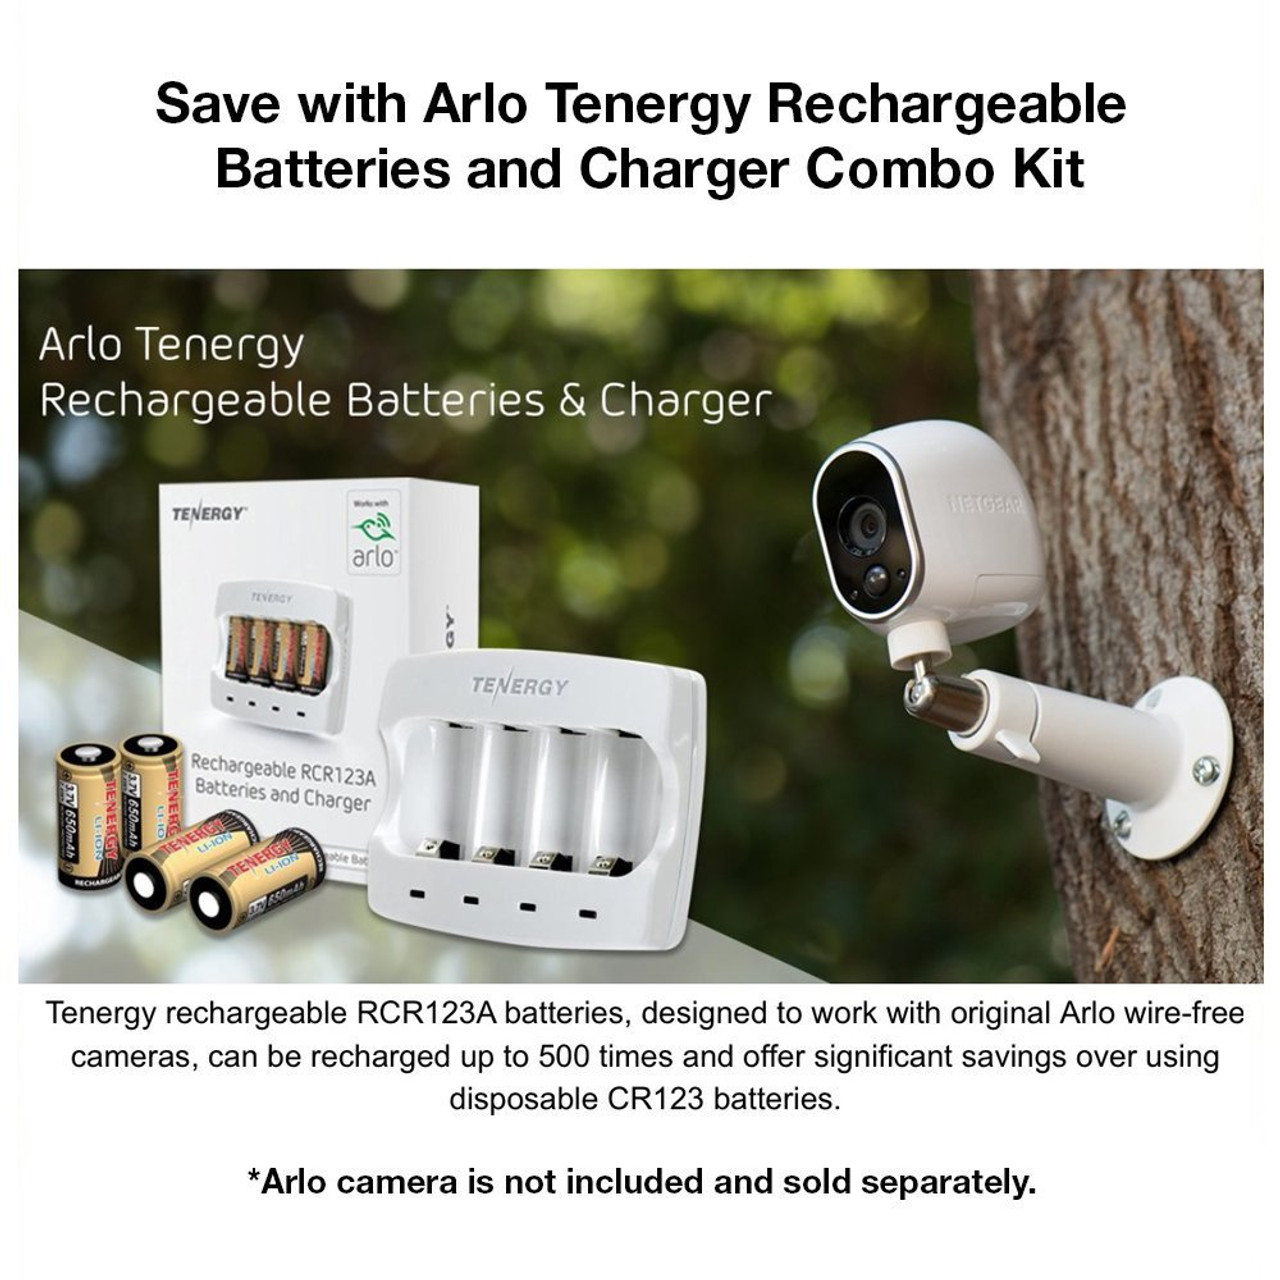 Rechargeable Batteries (12-Pack and Charger) Arlo Certified Li-ion 3.7V 650mAh Battery for Arlo Camera - VMC3030 (UL & UN certified), Bonus Sleeves & Cases